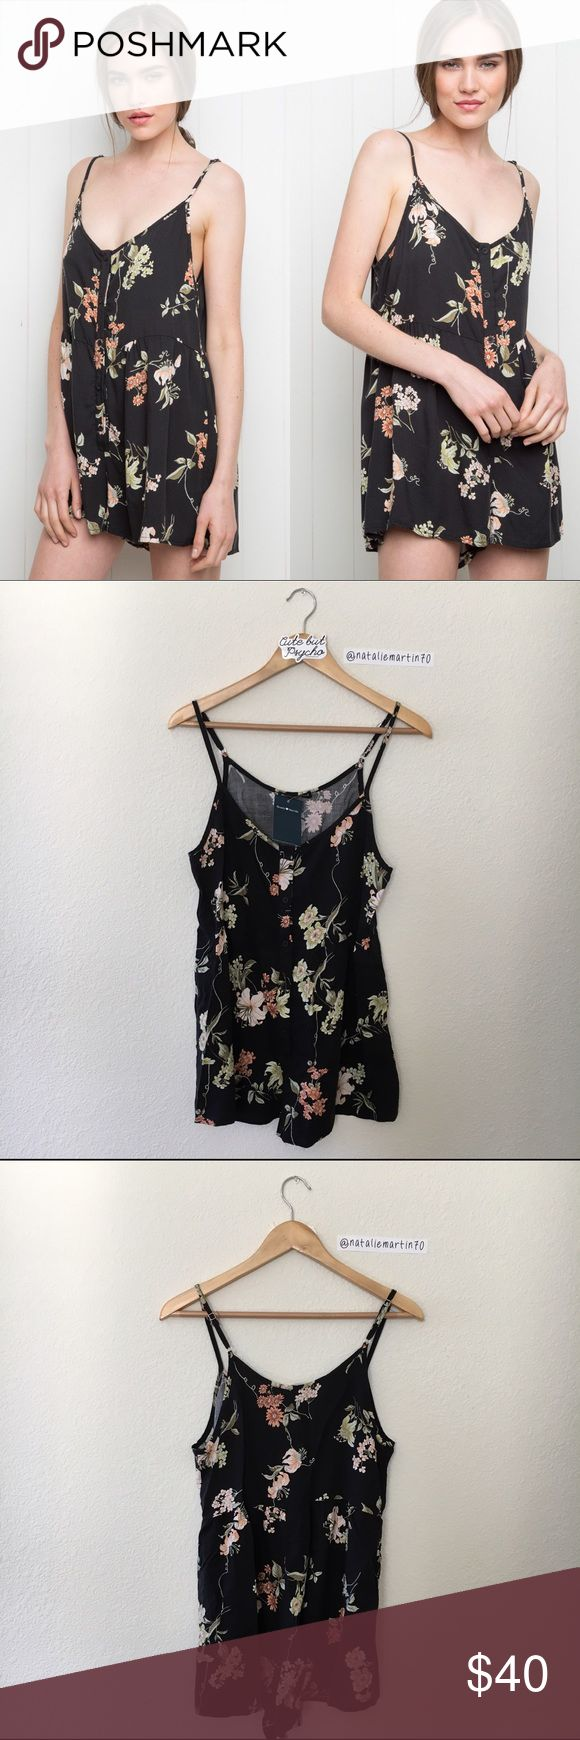 BNWT Brandy Melville Black Lilly Kimia Romper BNWT. Super cute floral print. Adjustable straps. Comes with free Brandy stickers.   🌸 I only sell on Posh 🌸 I don't trade 🌸 My price is FIRM! I won't be accepting any offers Brandy Melville Other